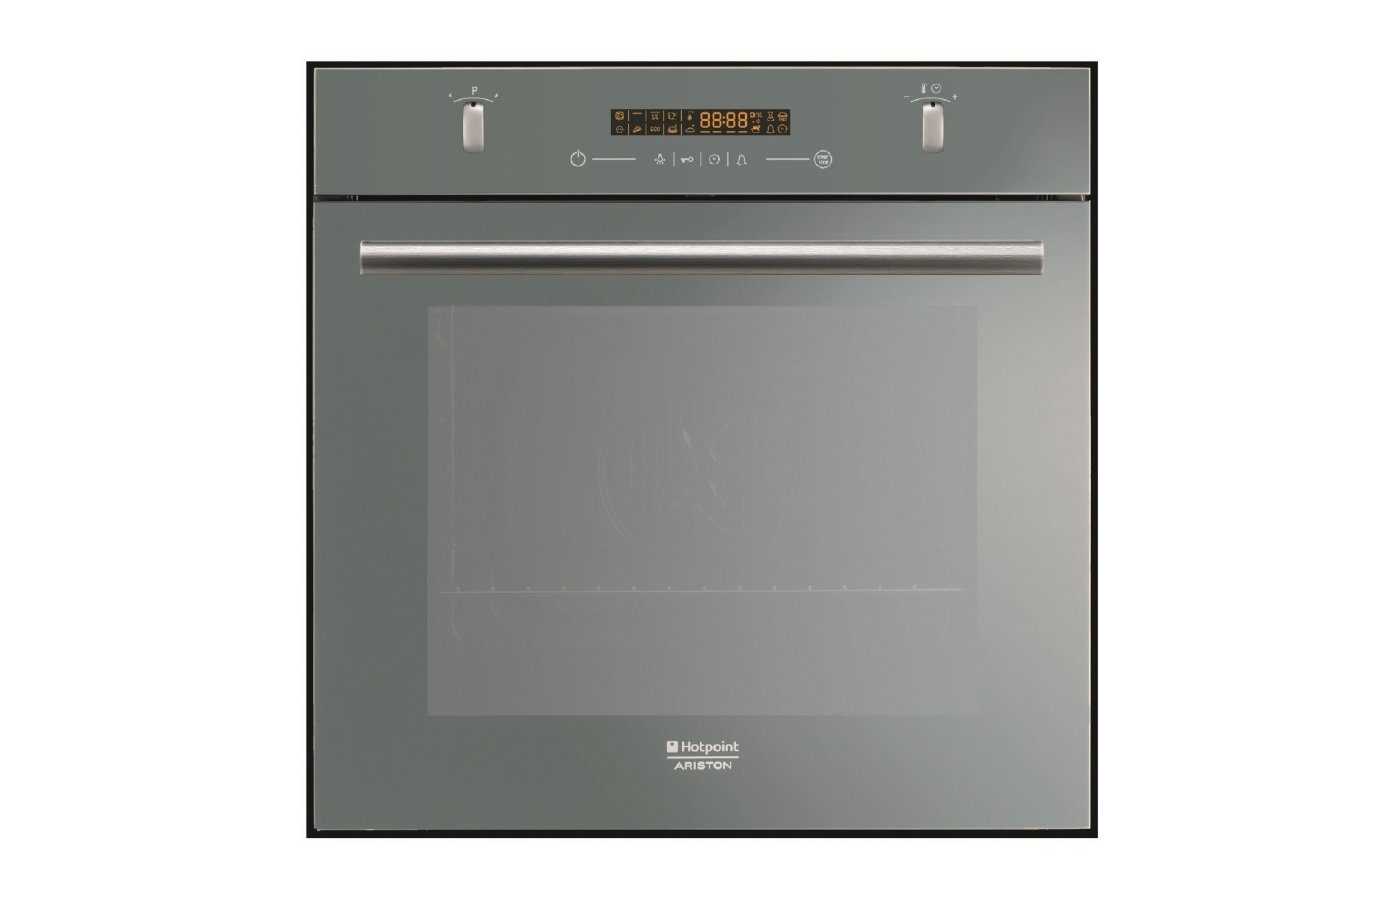 Духовой шкаф HOTPOINT-ARISTON 7OFKQ 897EC(I)RU/HA